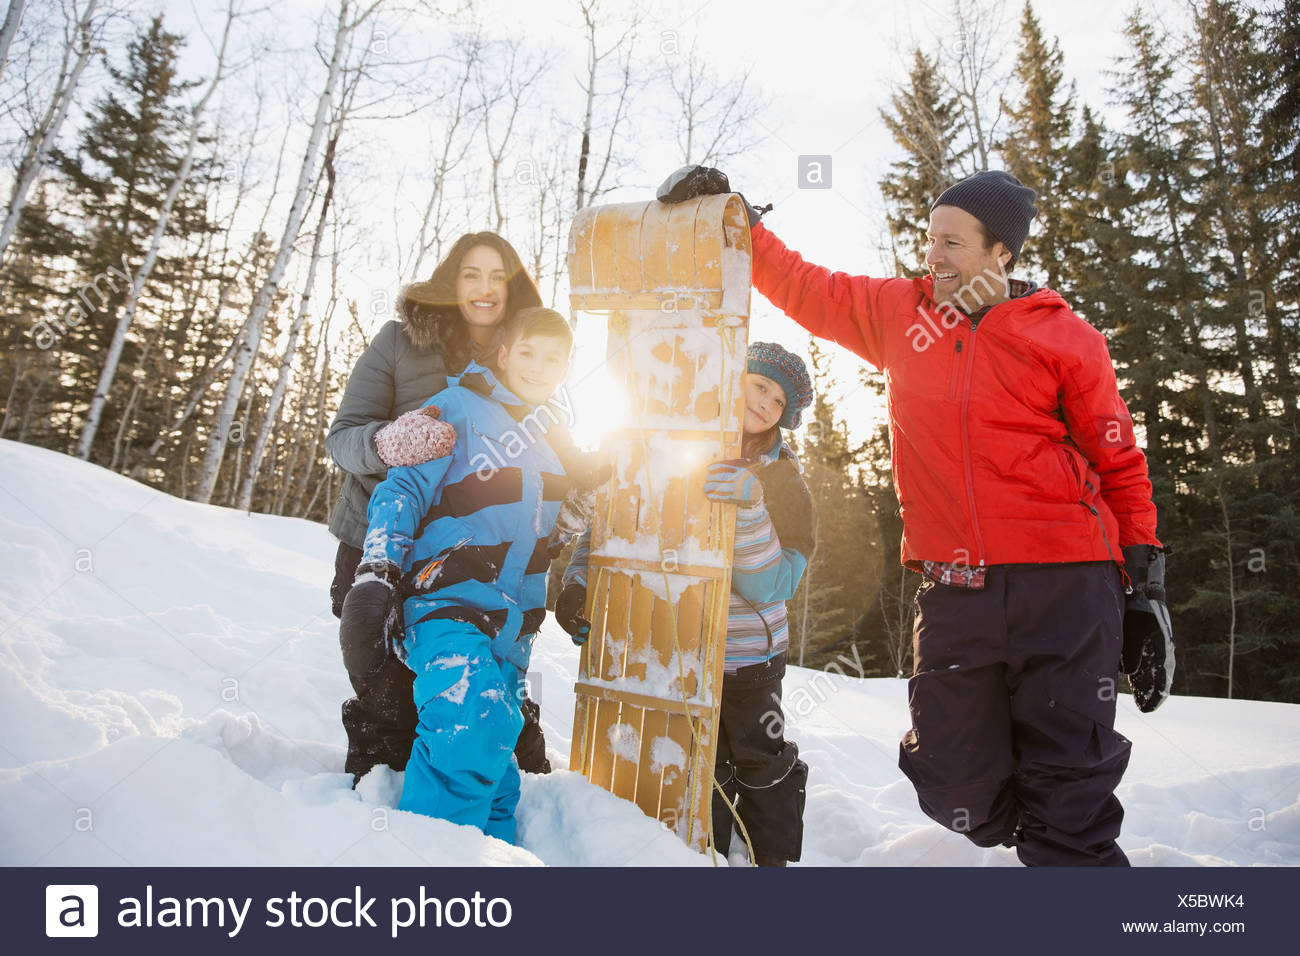 Portrait of smiling family and toboggan outdoors - Stock Image